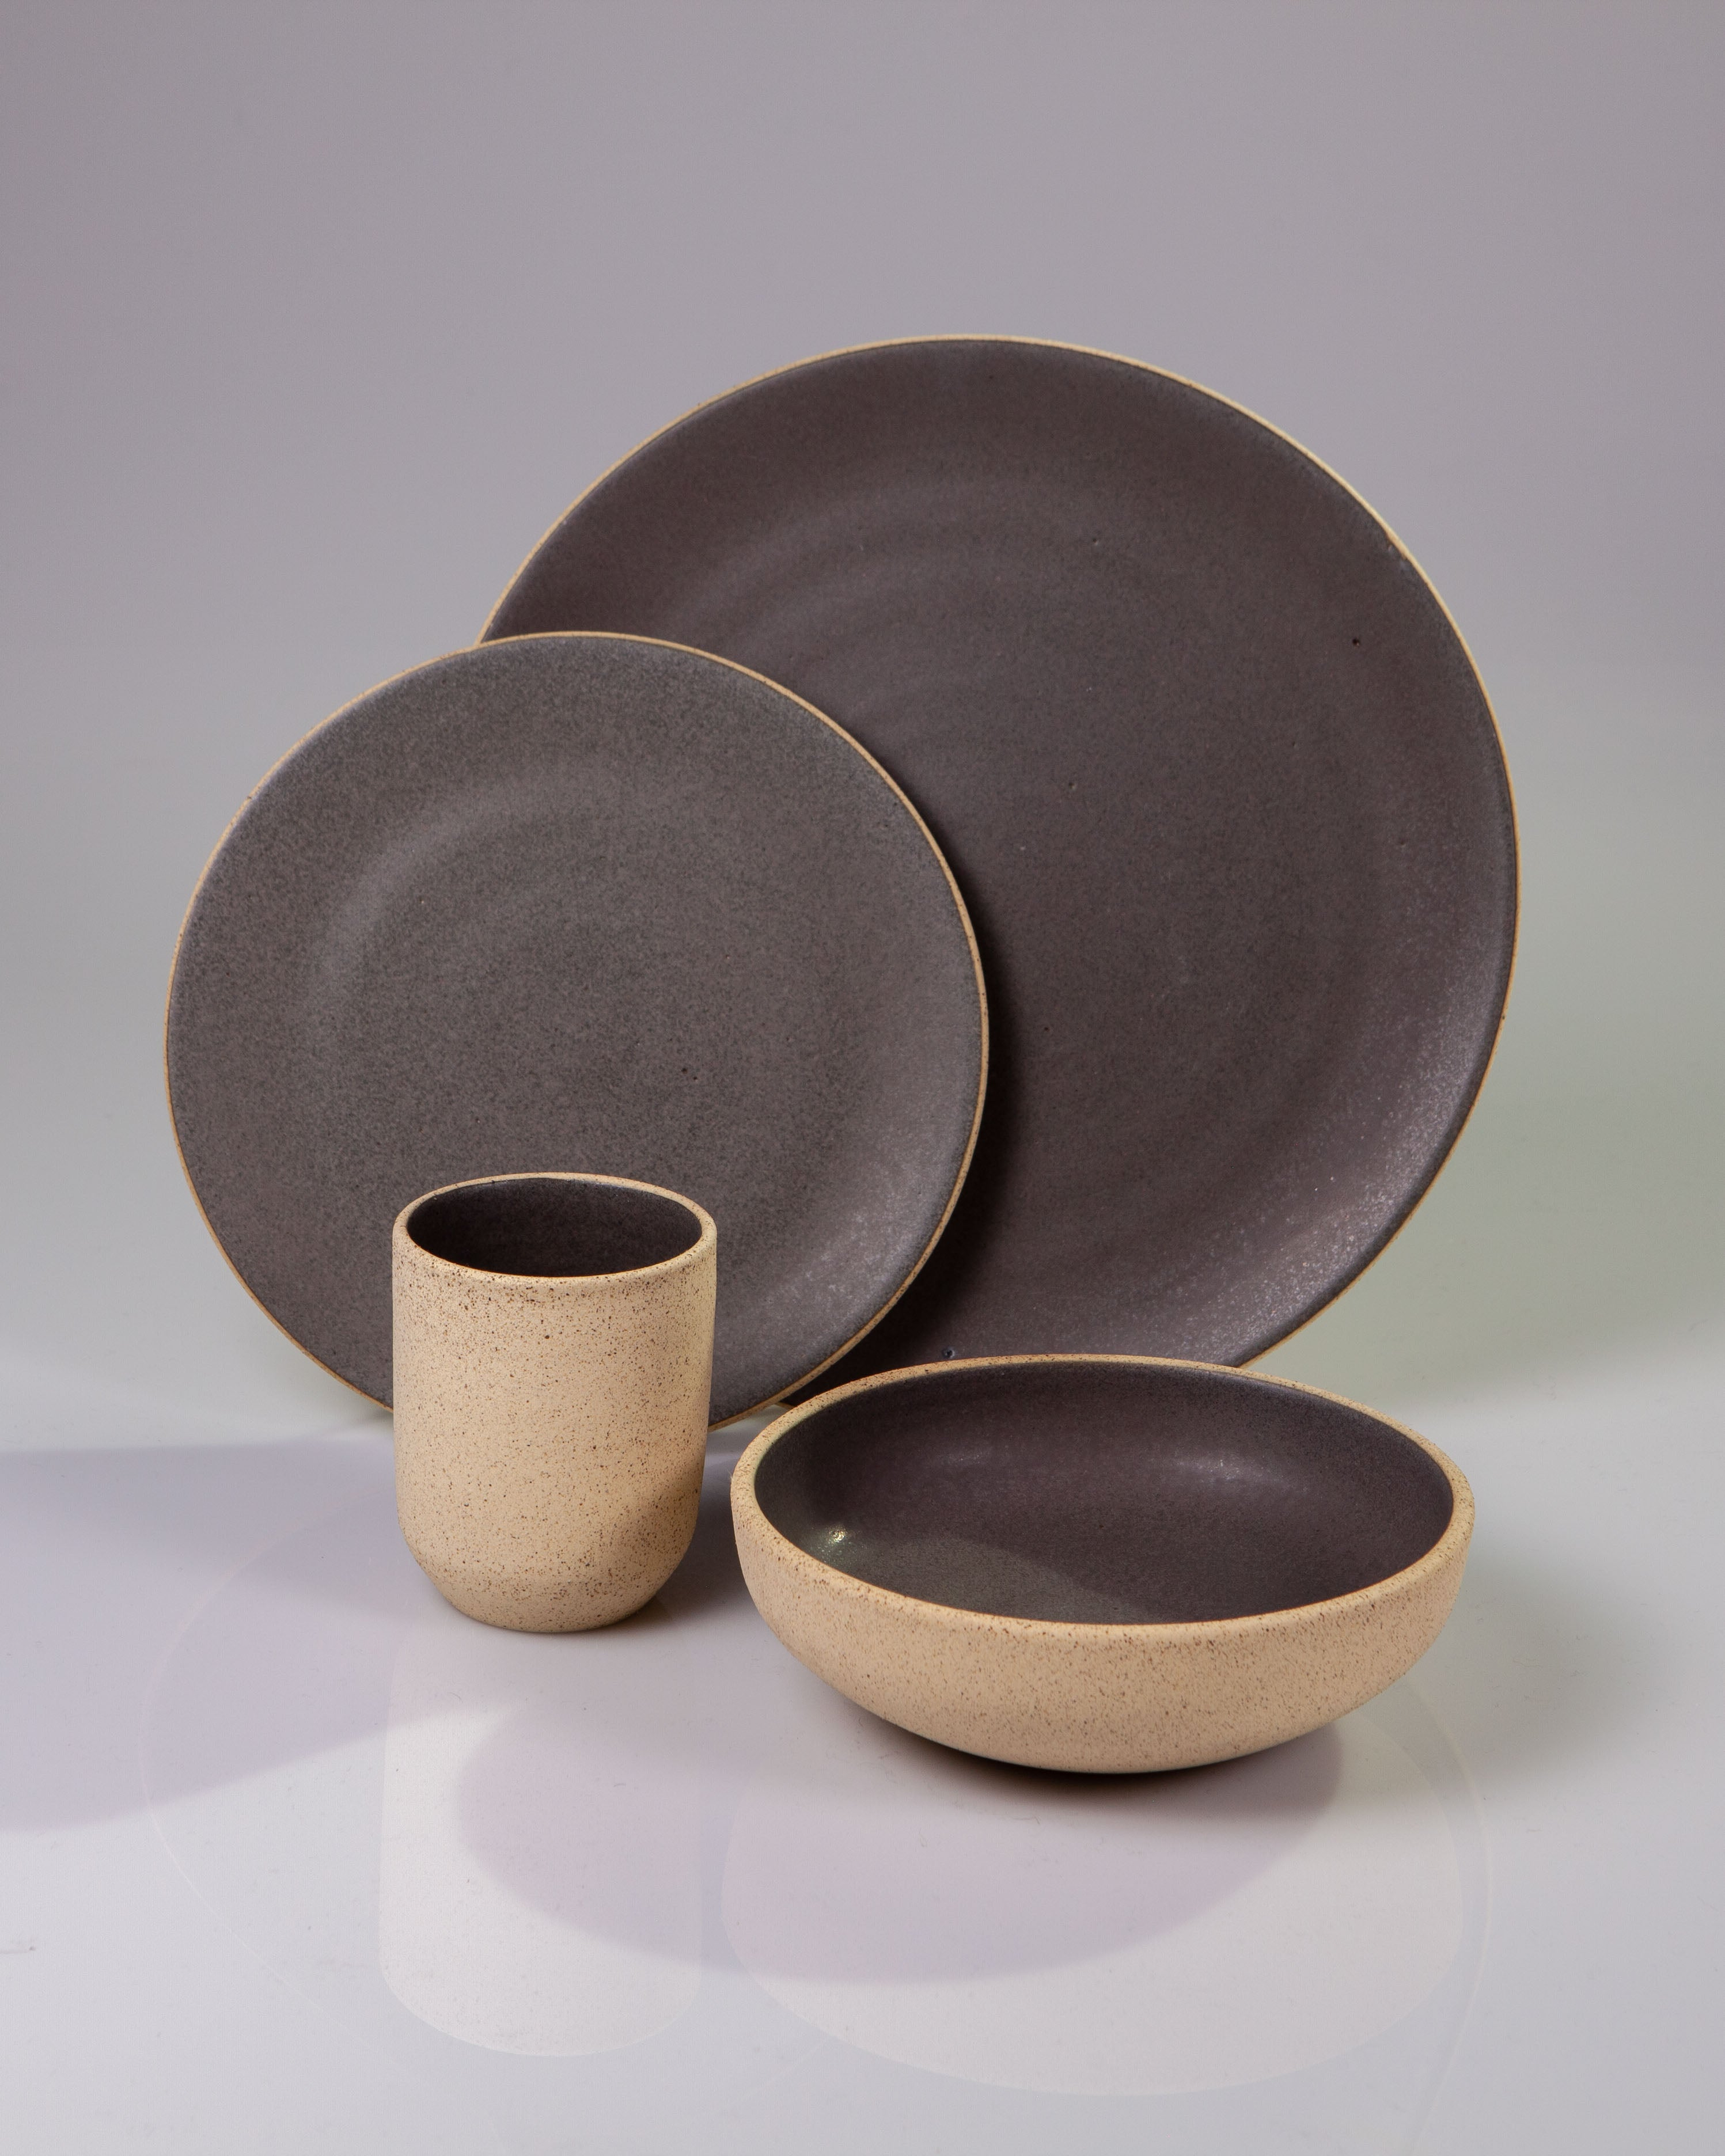 Handmade ceramic place setting plates cup bowl grey organic texture